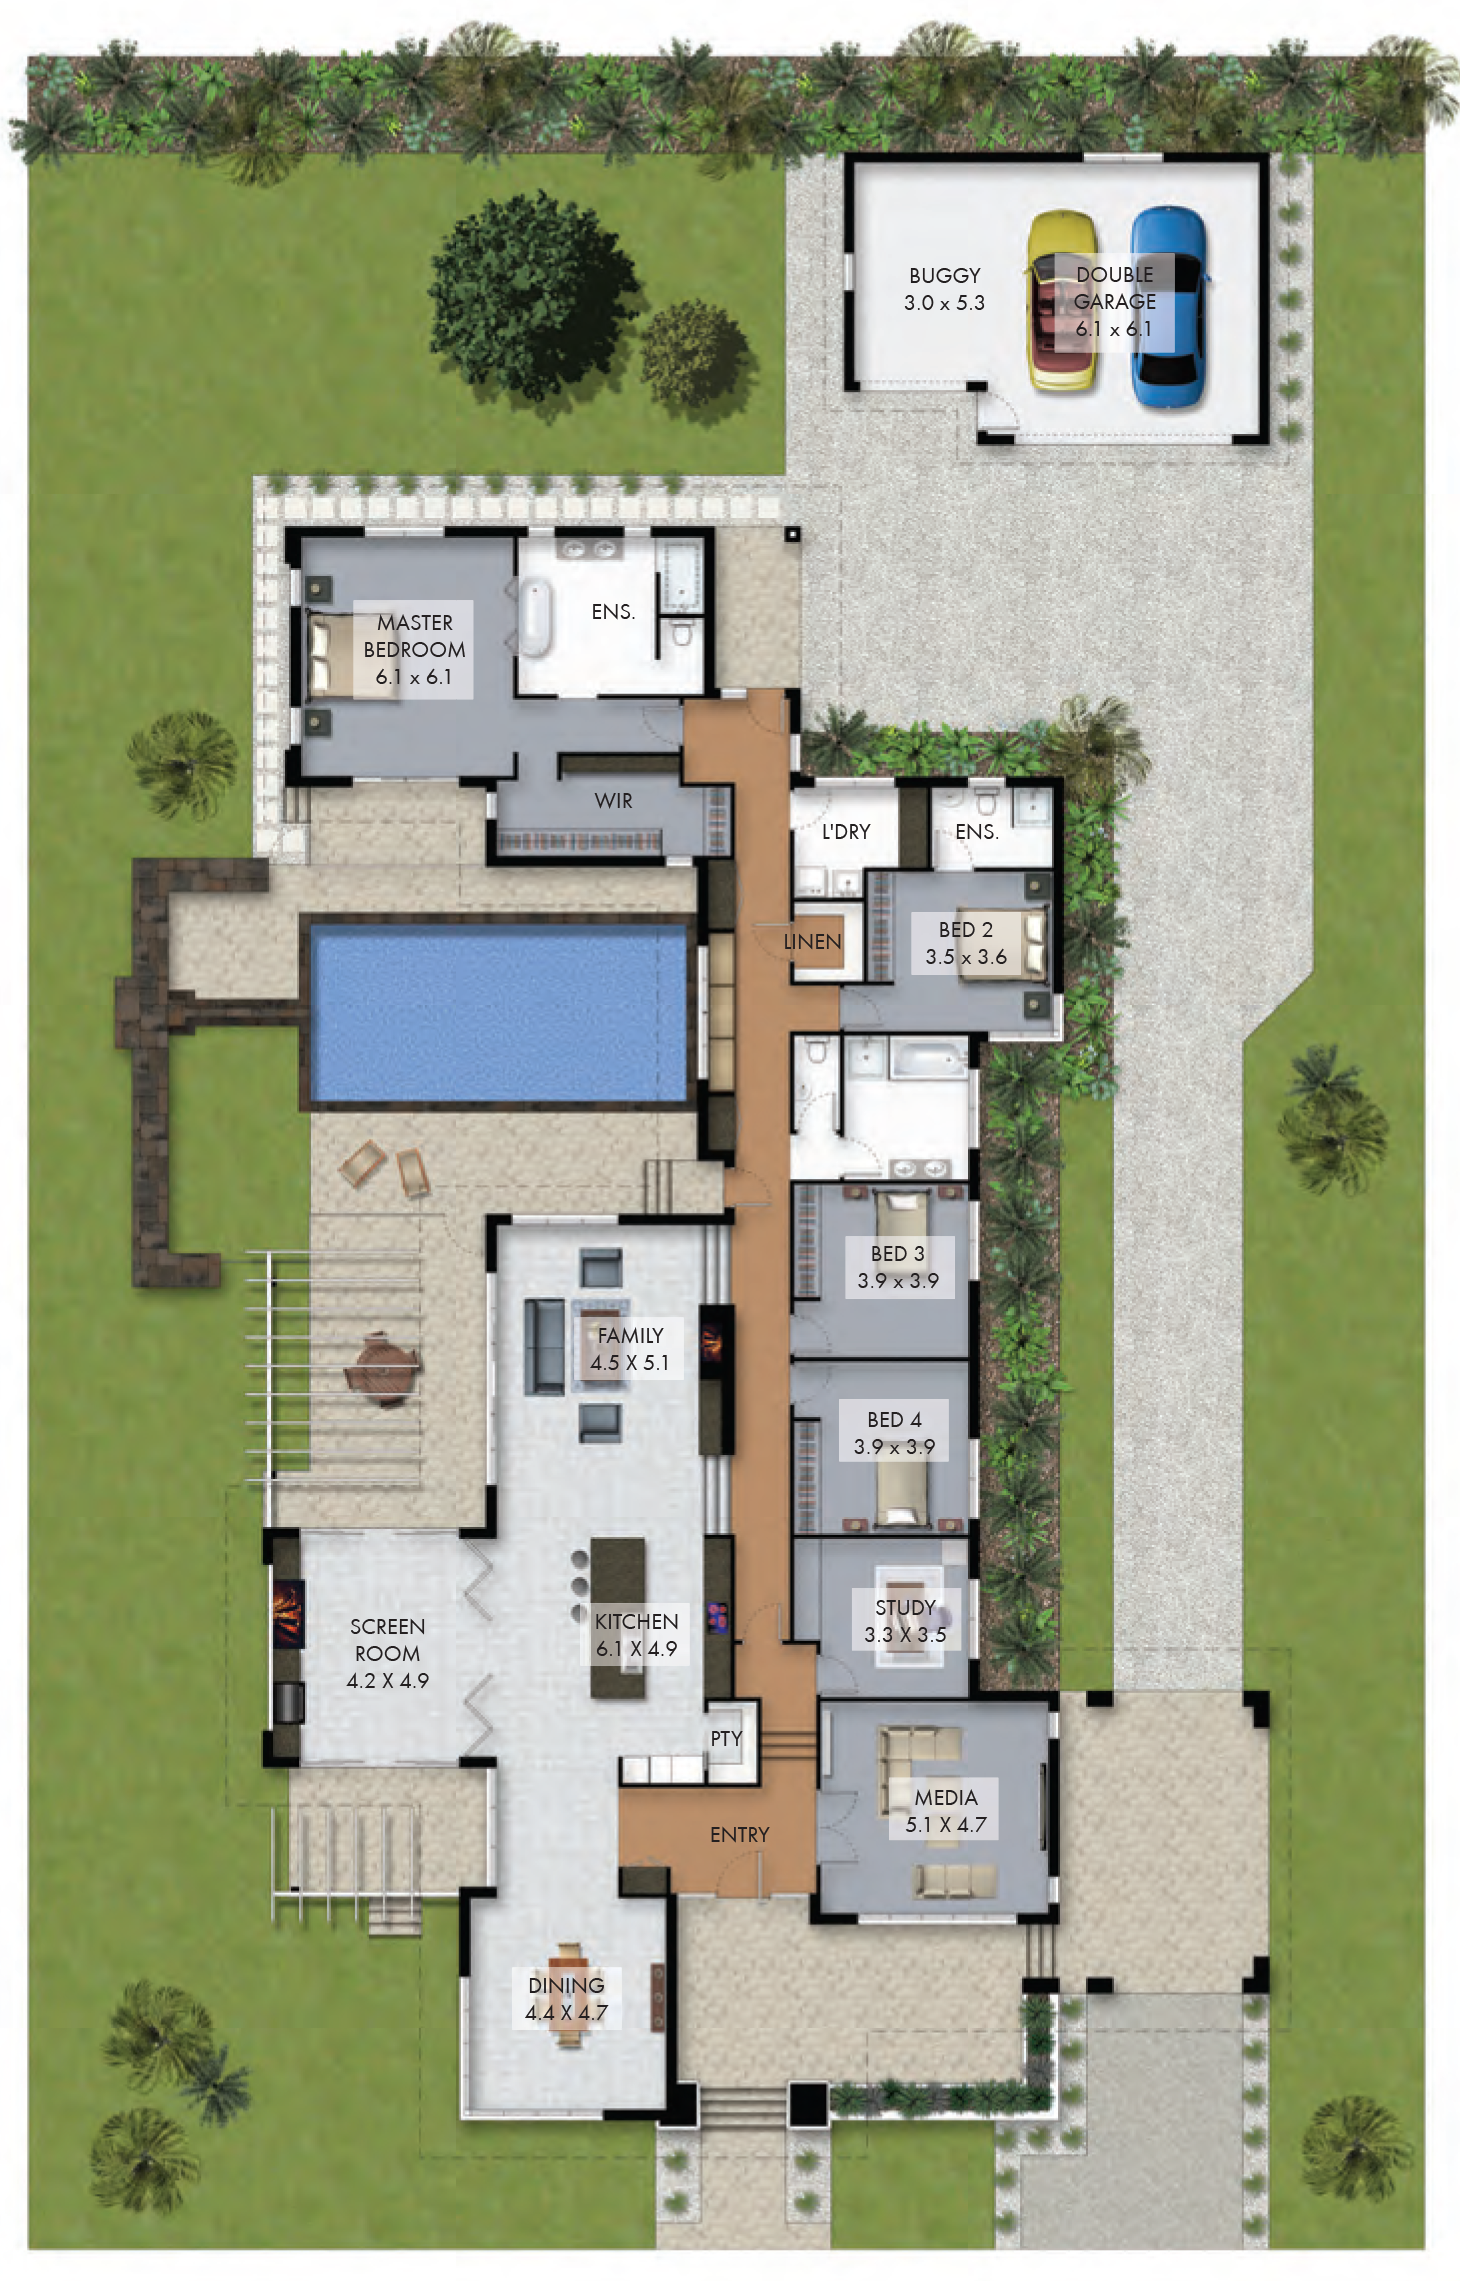 Floor Plan Friday Luxury 4 Bedroom Family Home With Pool Pool House Plans Luxury House Plans Dream House Plans